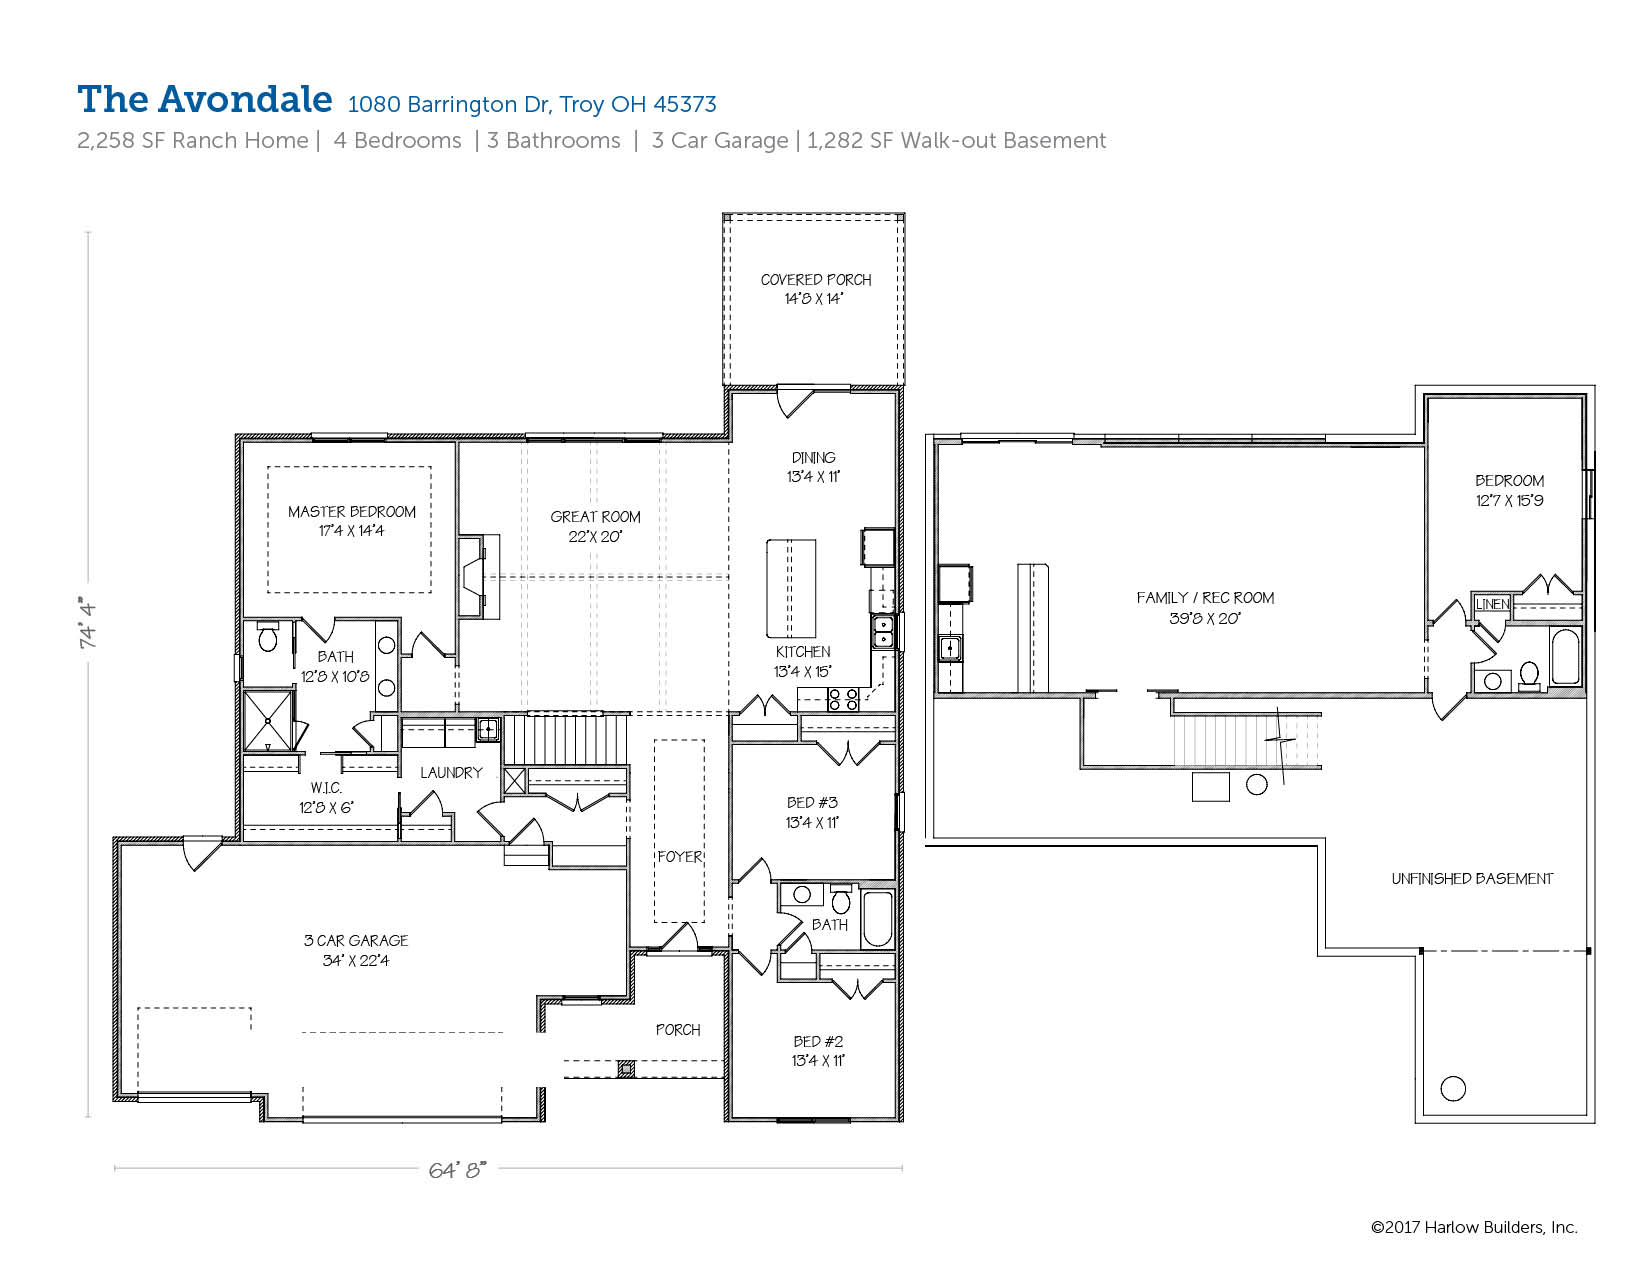 The avondale 1080 barrington dr troy harlow builders inc Avondale house plan